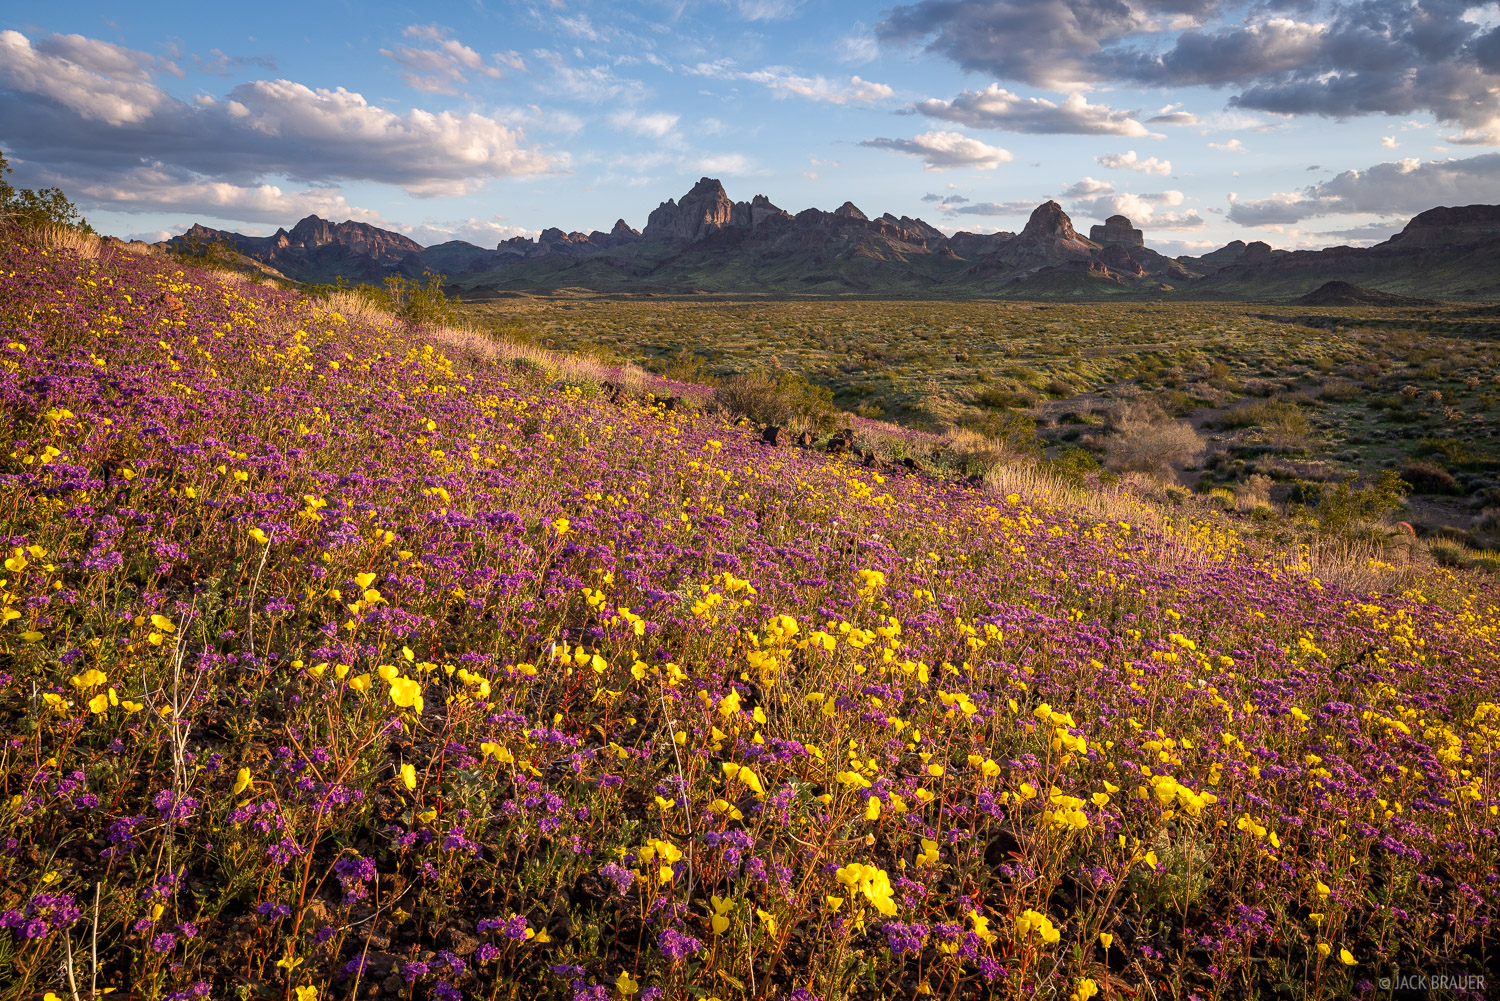 Sunset light on vast fields of wildflowers near the Turtle Mountains.